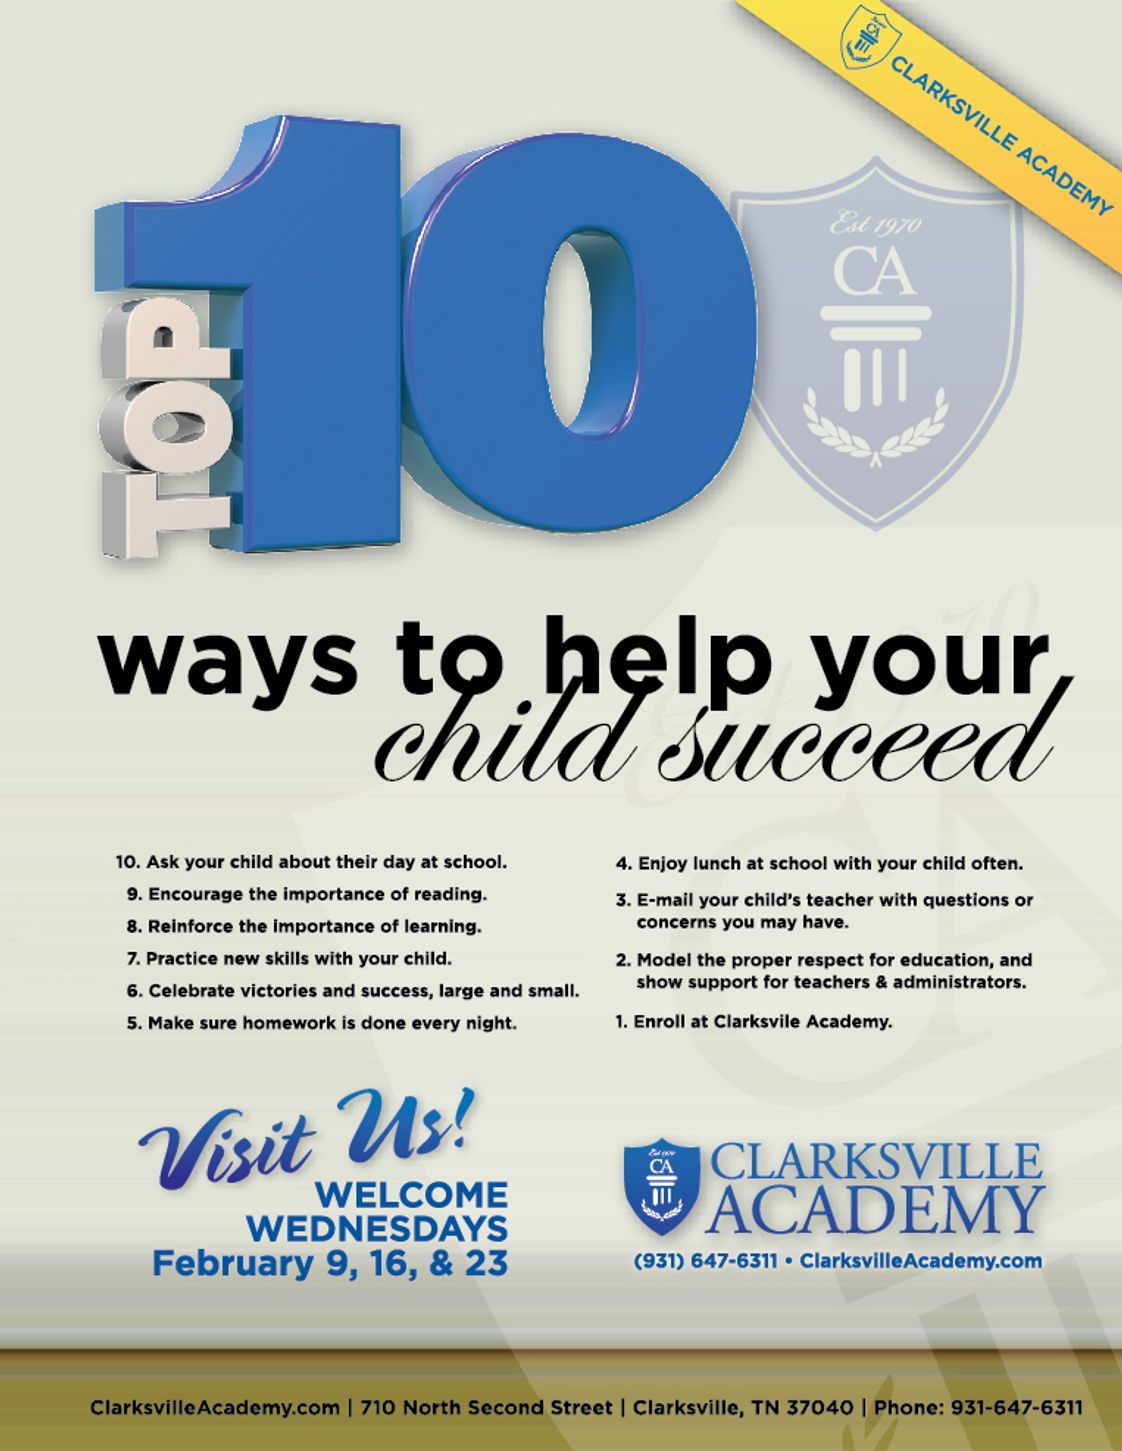 Clarksville Academy Photo - Here are the Top 10 ways to stregthen your child's education.